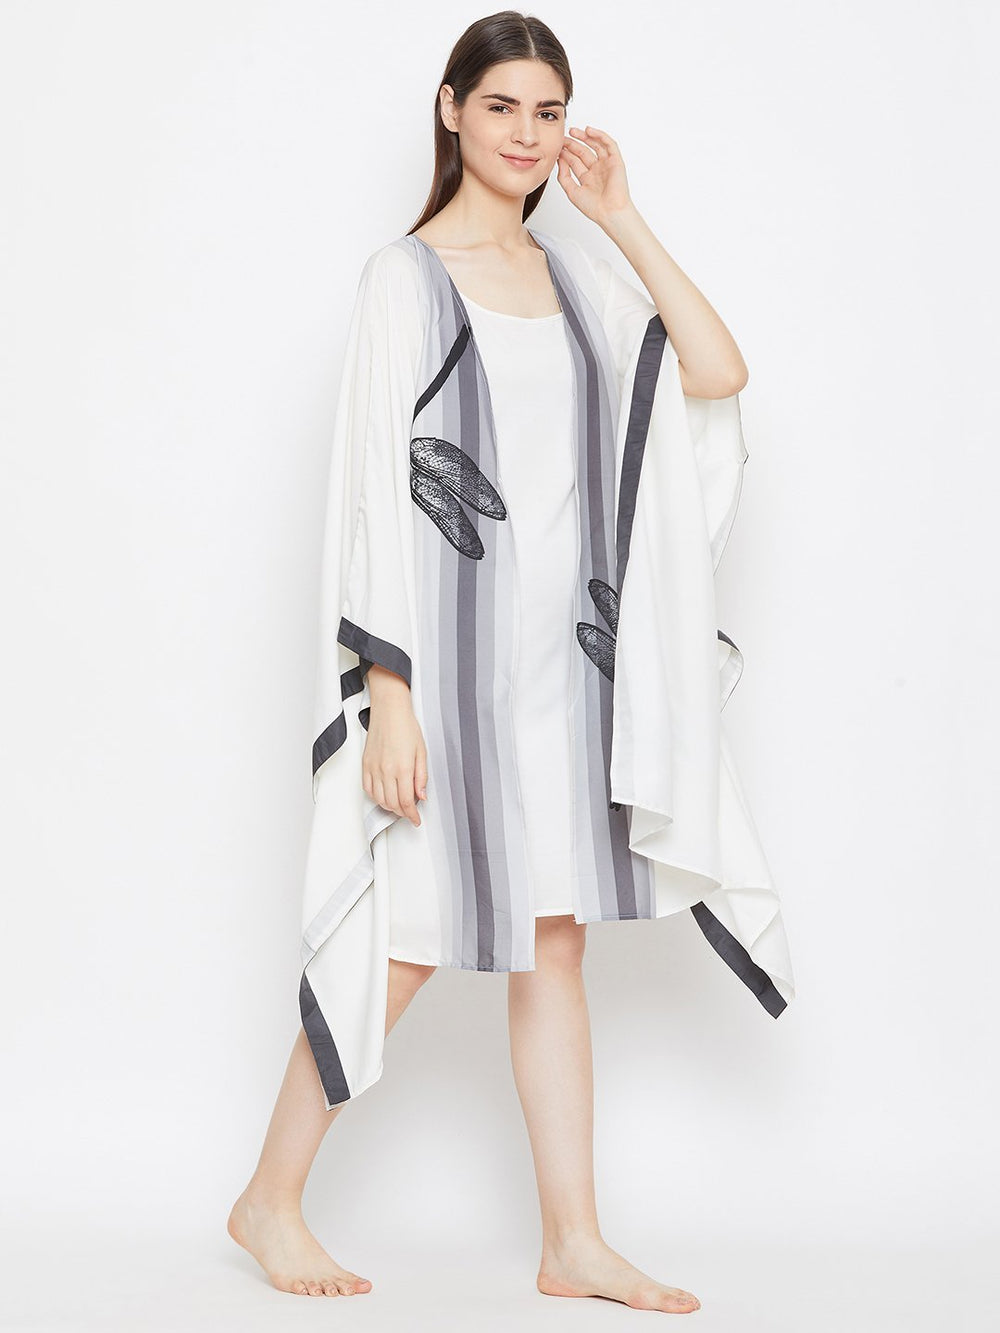 WHITE PRINTED KNEE LENGTH KAFTAN GOWNSET WITH SLIP